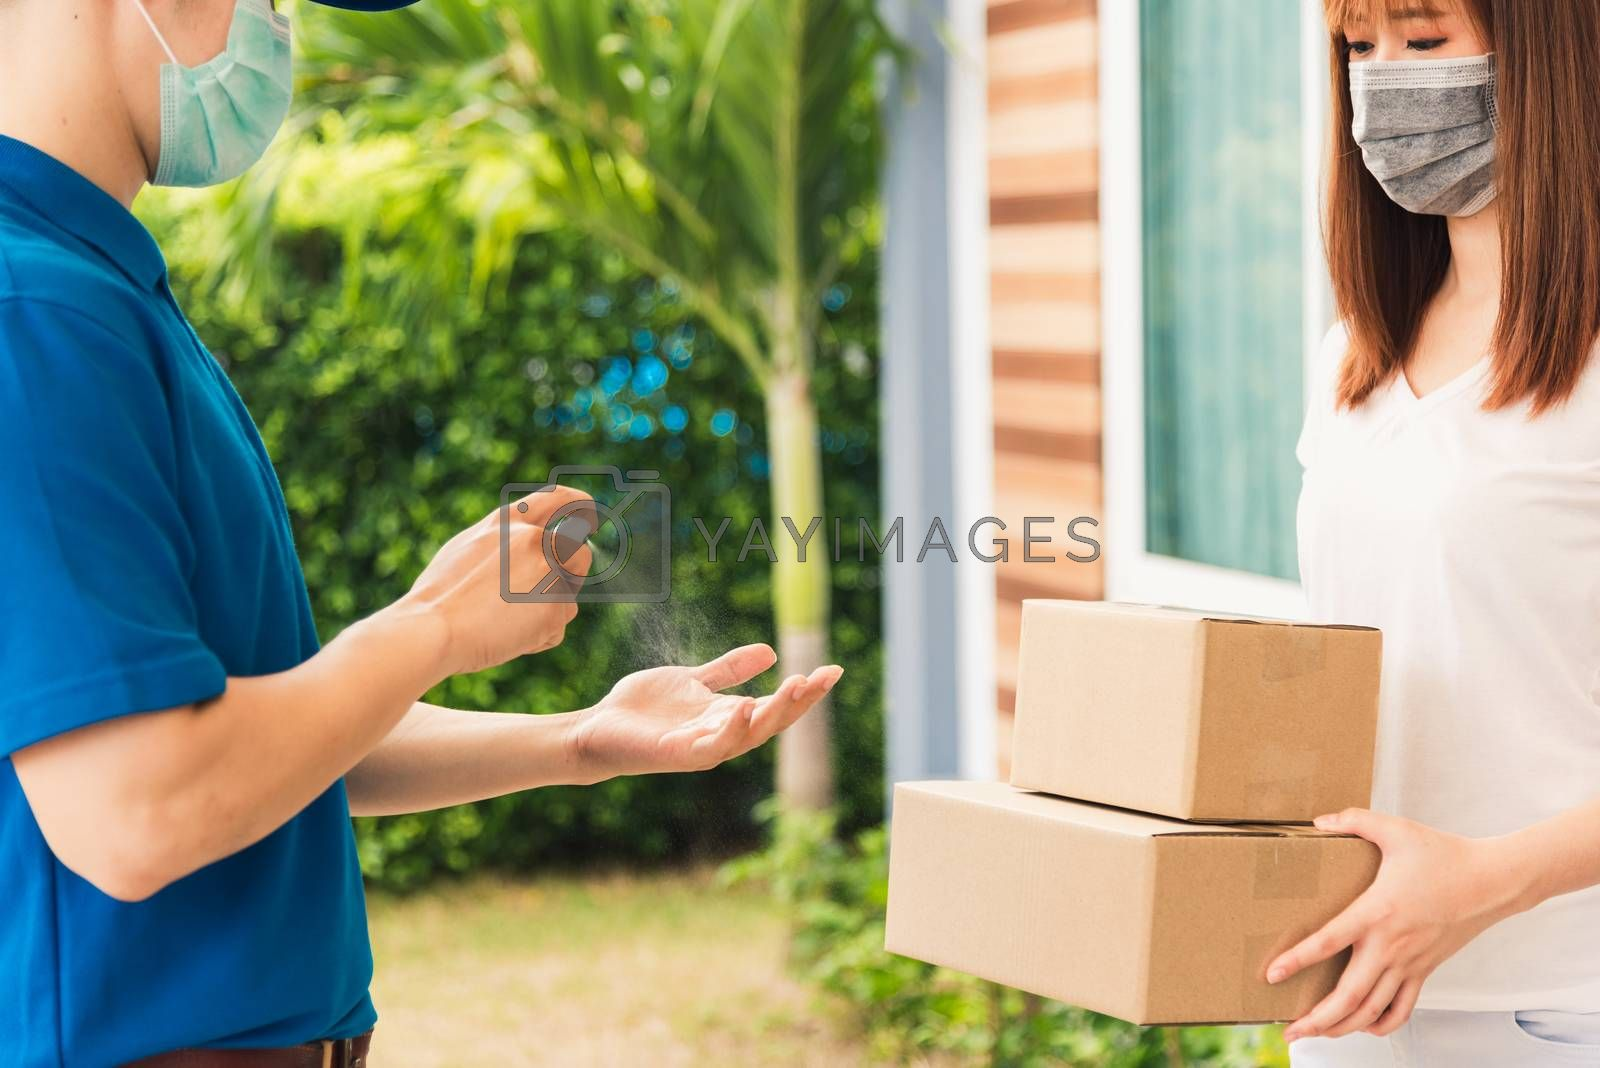 Asian delivery express courier young man use spray sterilize before giving boxes to woman customer receiving both protective face mask, under curfew quarantine pandemic coronavirus COVID-19